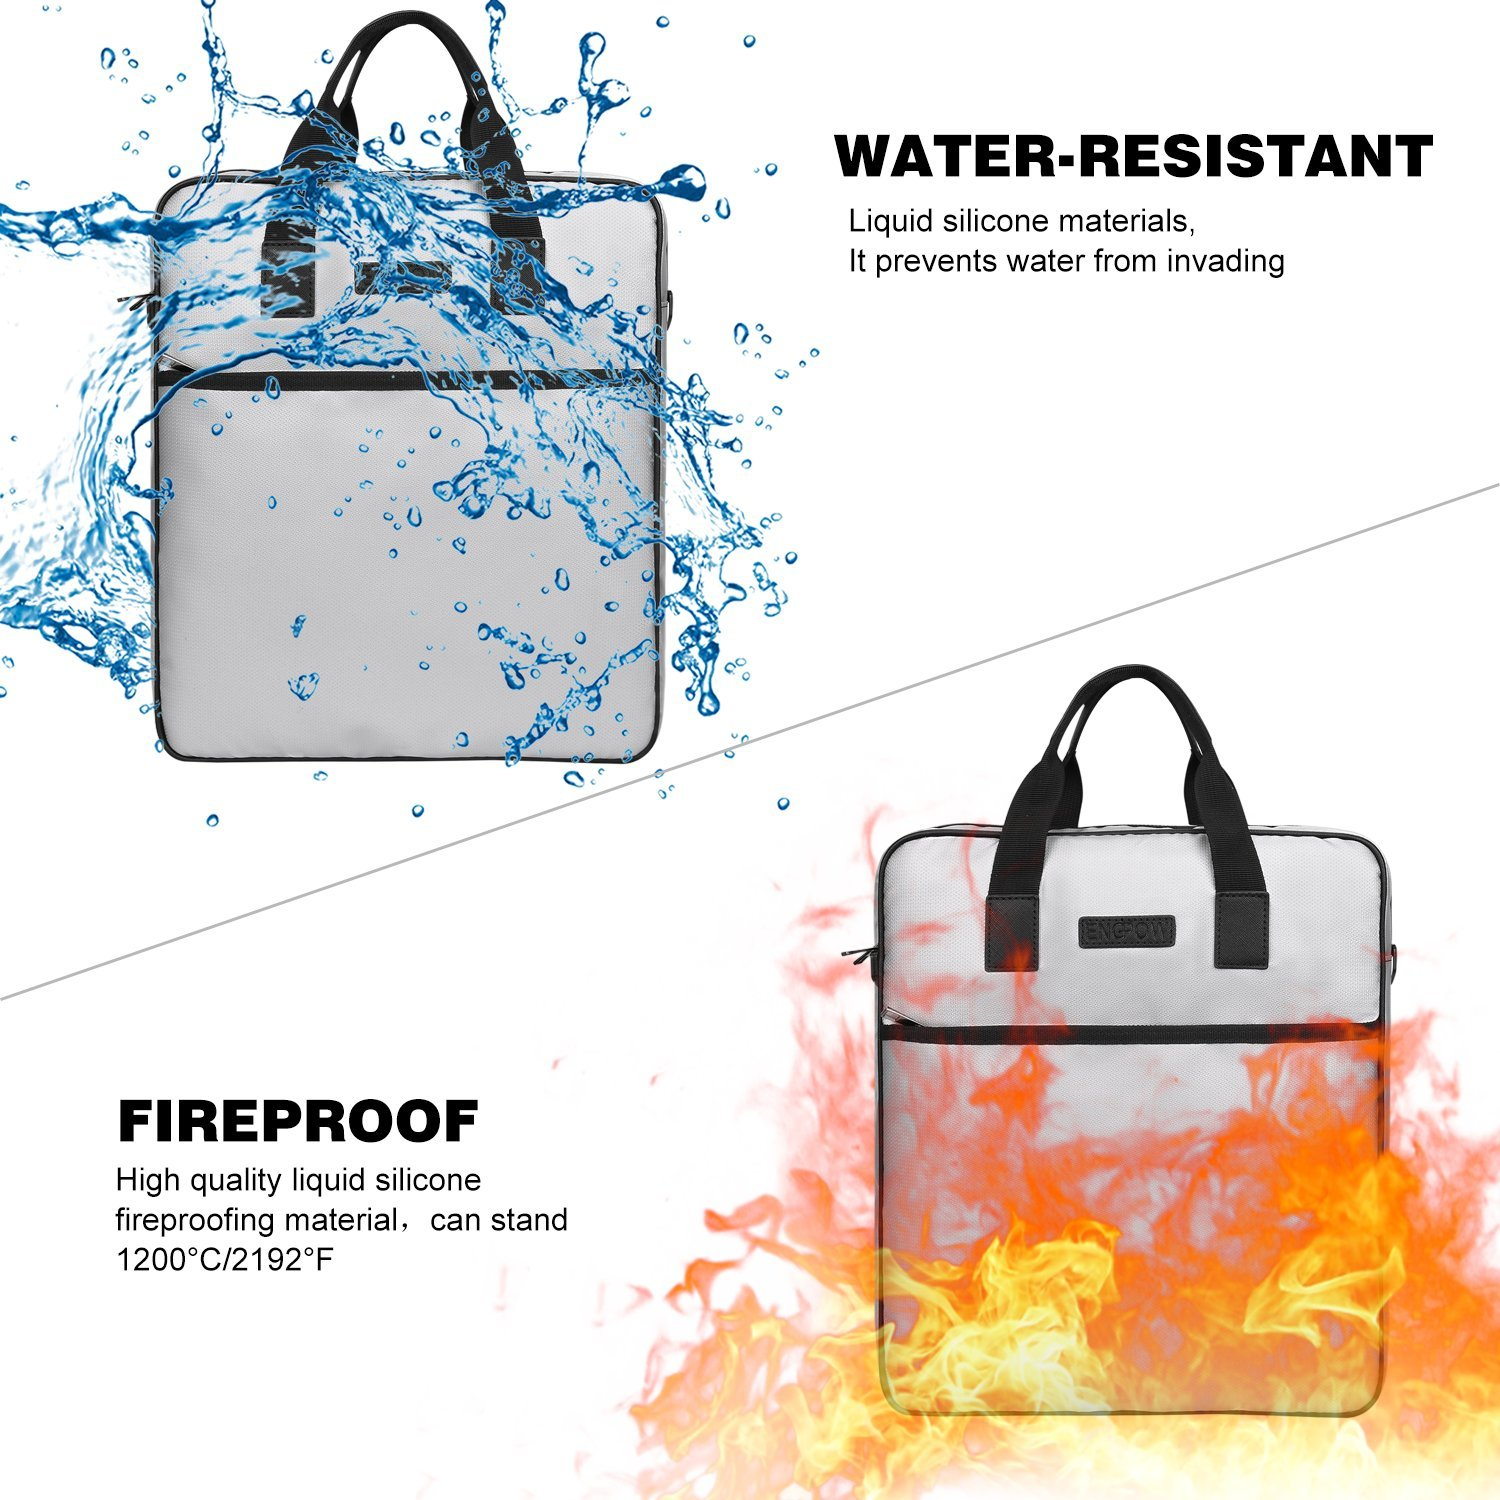 Fireproof Document Bag ENGPOW (15x11x3inch) Laptop Bag Non-Itchy Silicone Coated Fire Resistant Money Bag.Fireproof Safe Storage for Laptop, Money, Documents, Jewelry and Passport